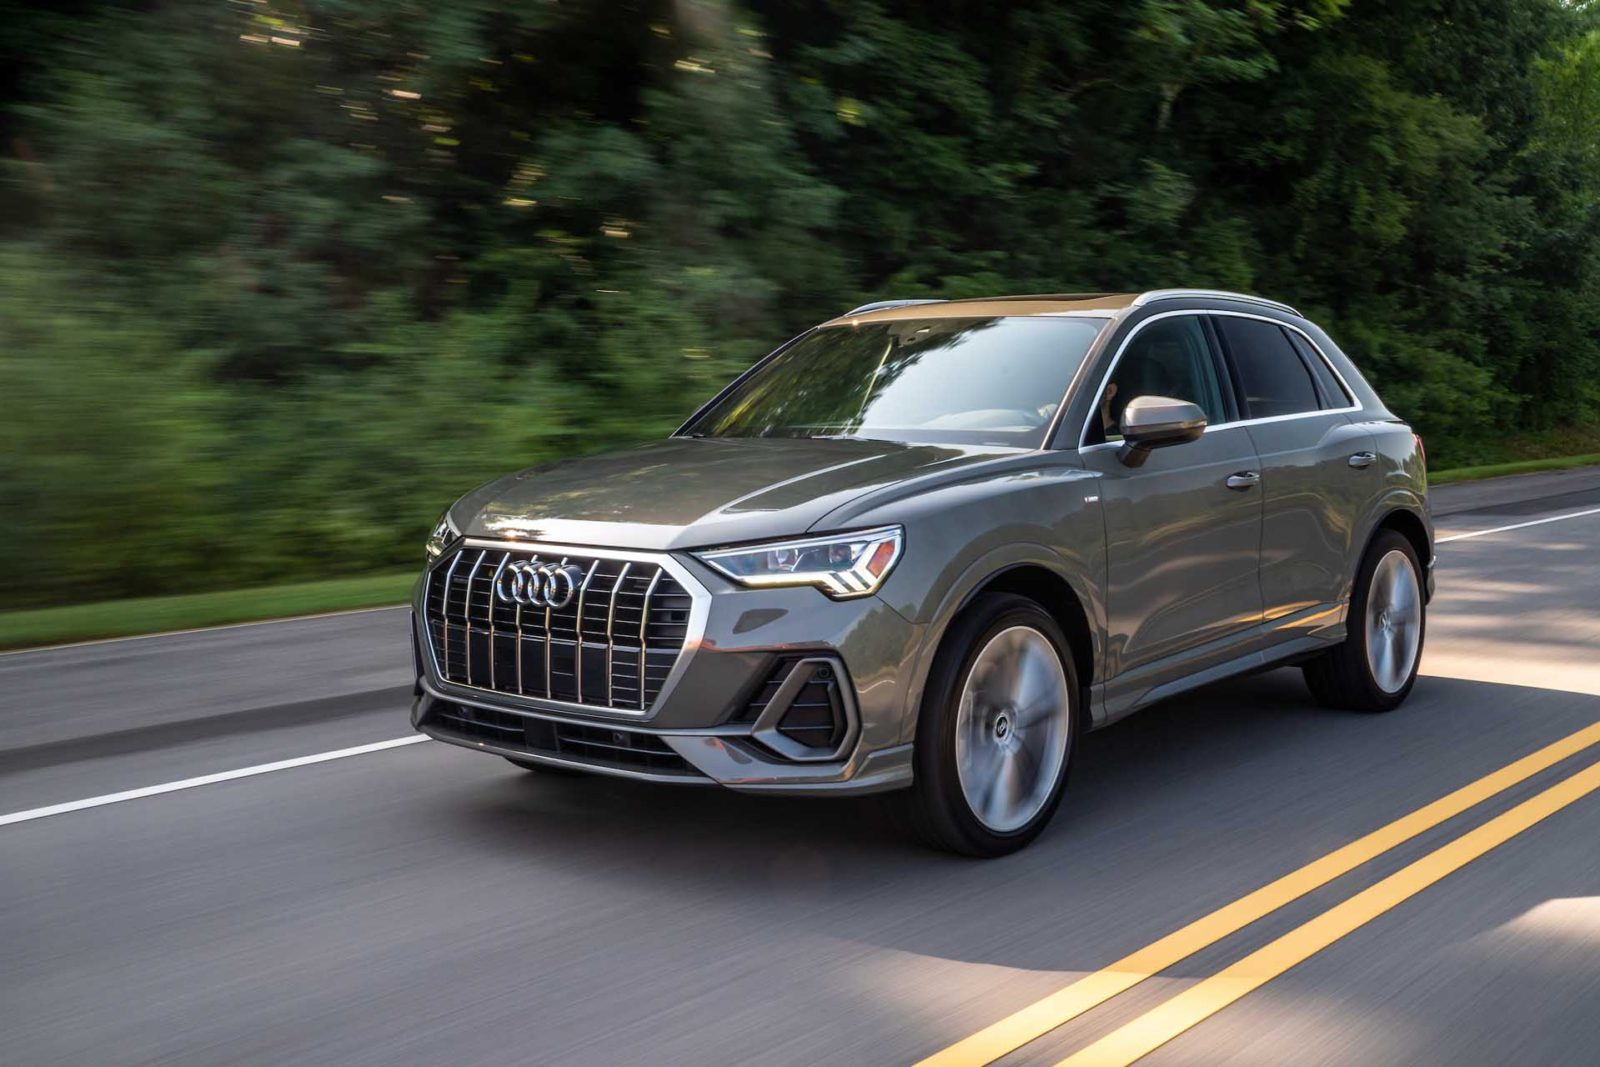 2021 audi q3 suv gets new trim, costs $35,095 | viruscars